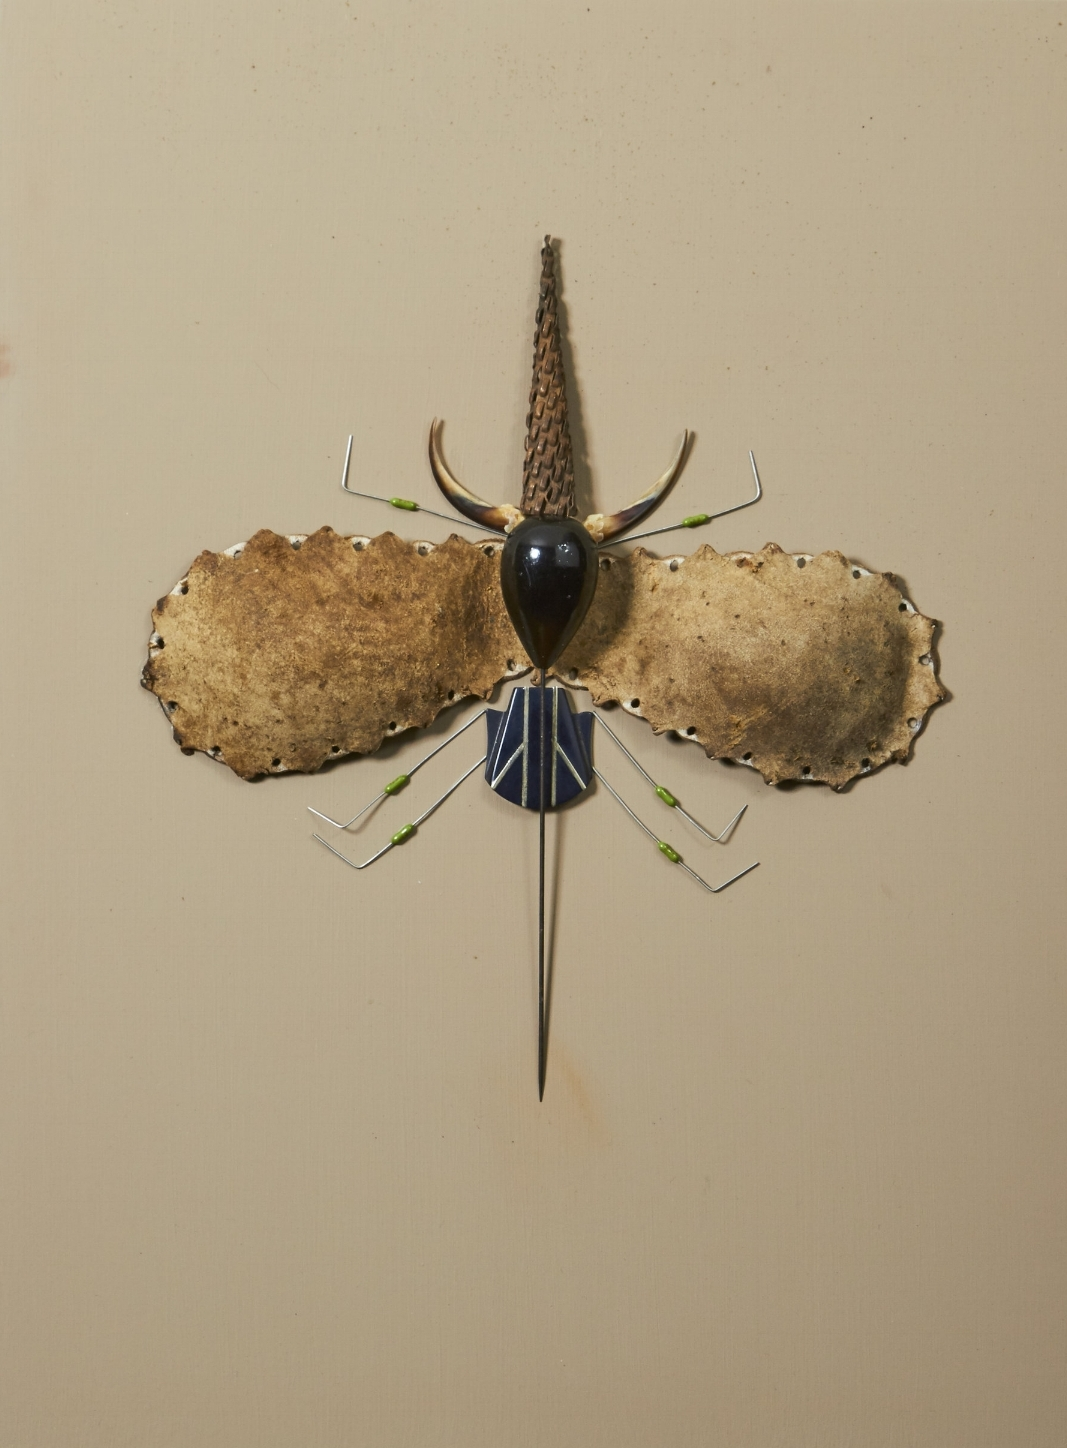 Untitled Insect